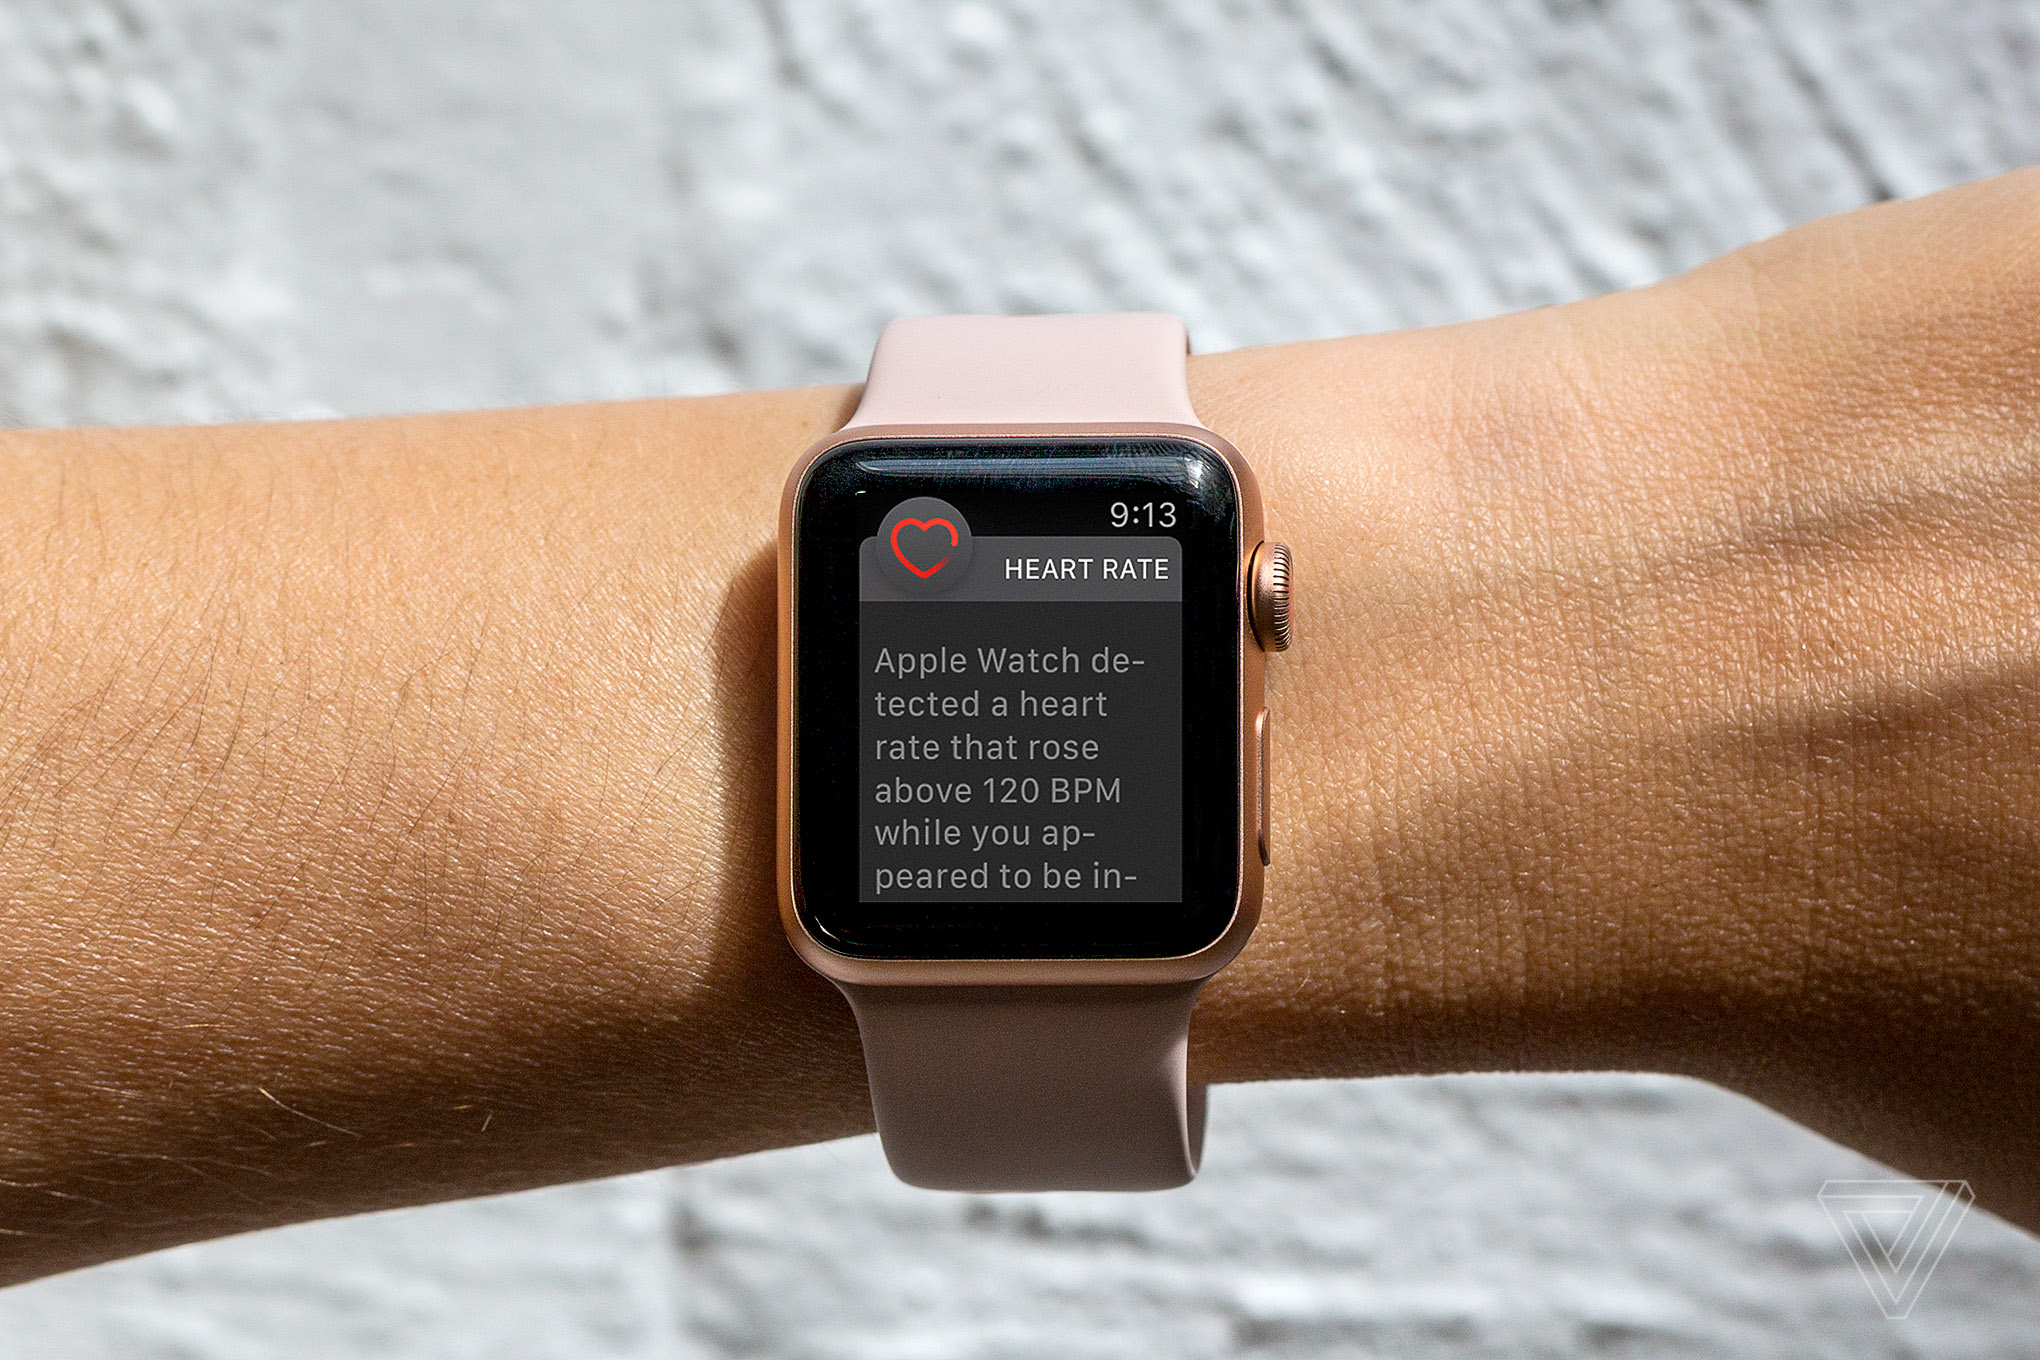 apple watch heart rate monitor simulated screen